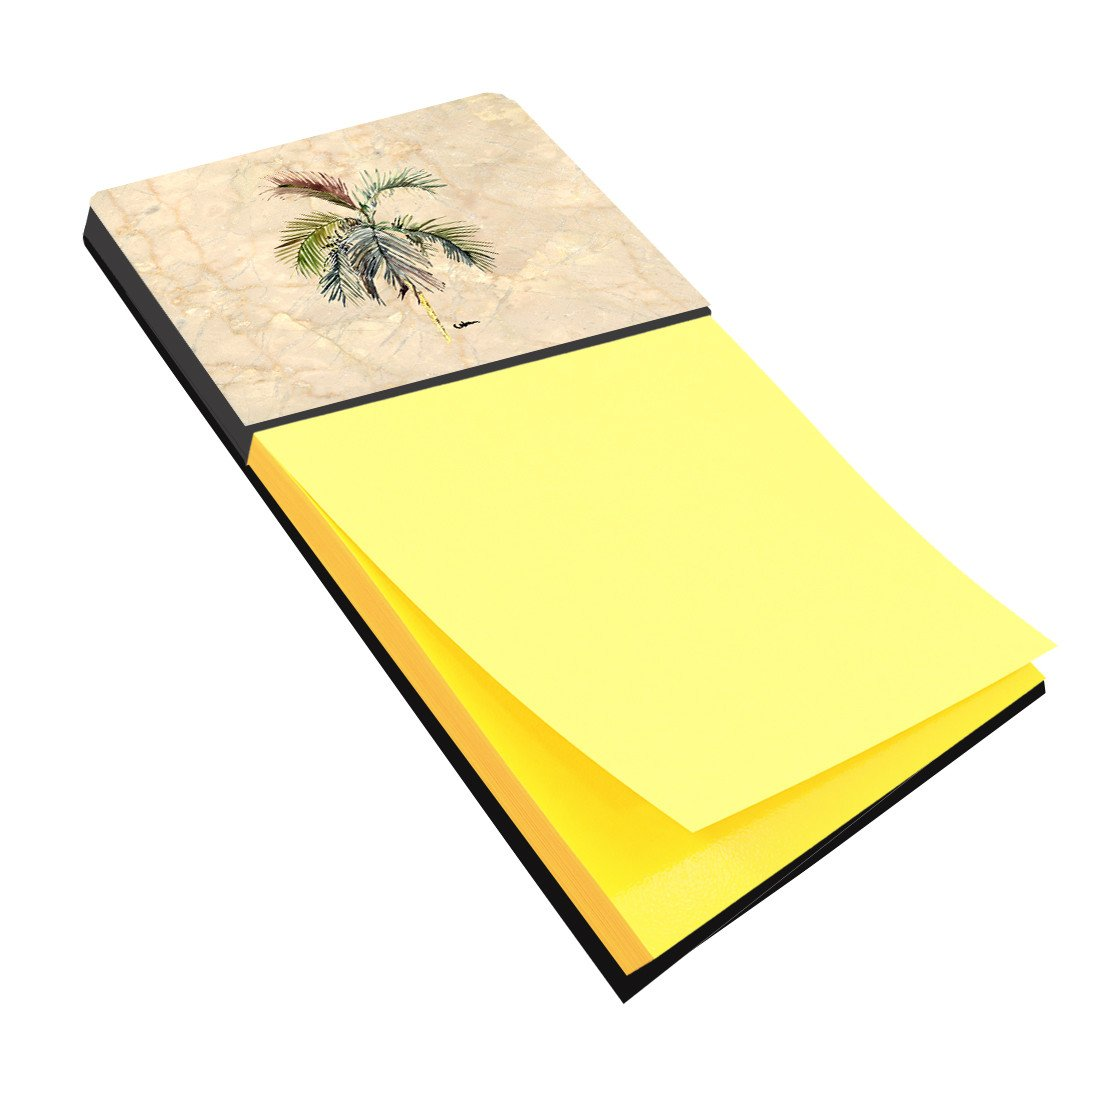 Palm Tree Refiillable Sticky Note Holder or Postit Note Dispenser 8483SN by Caroline's Treasures